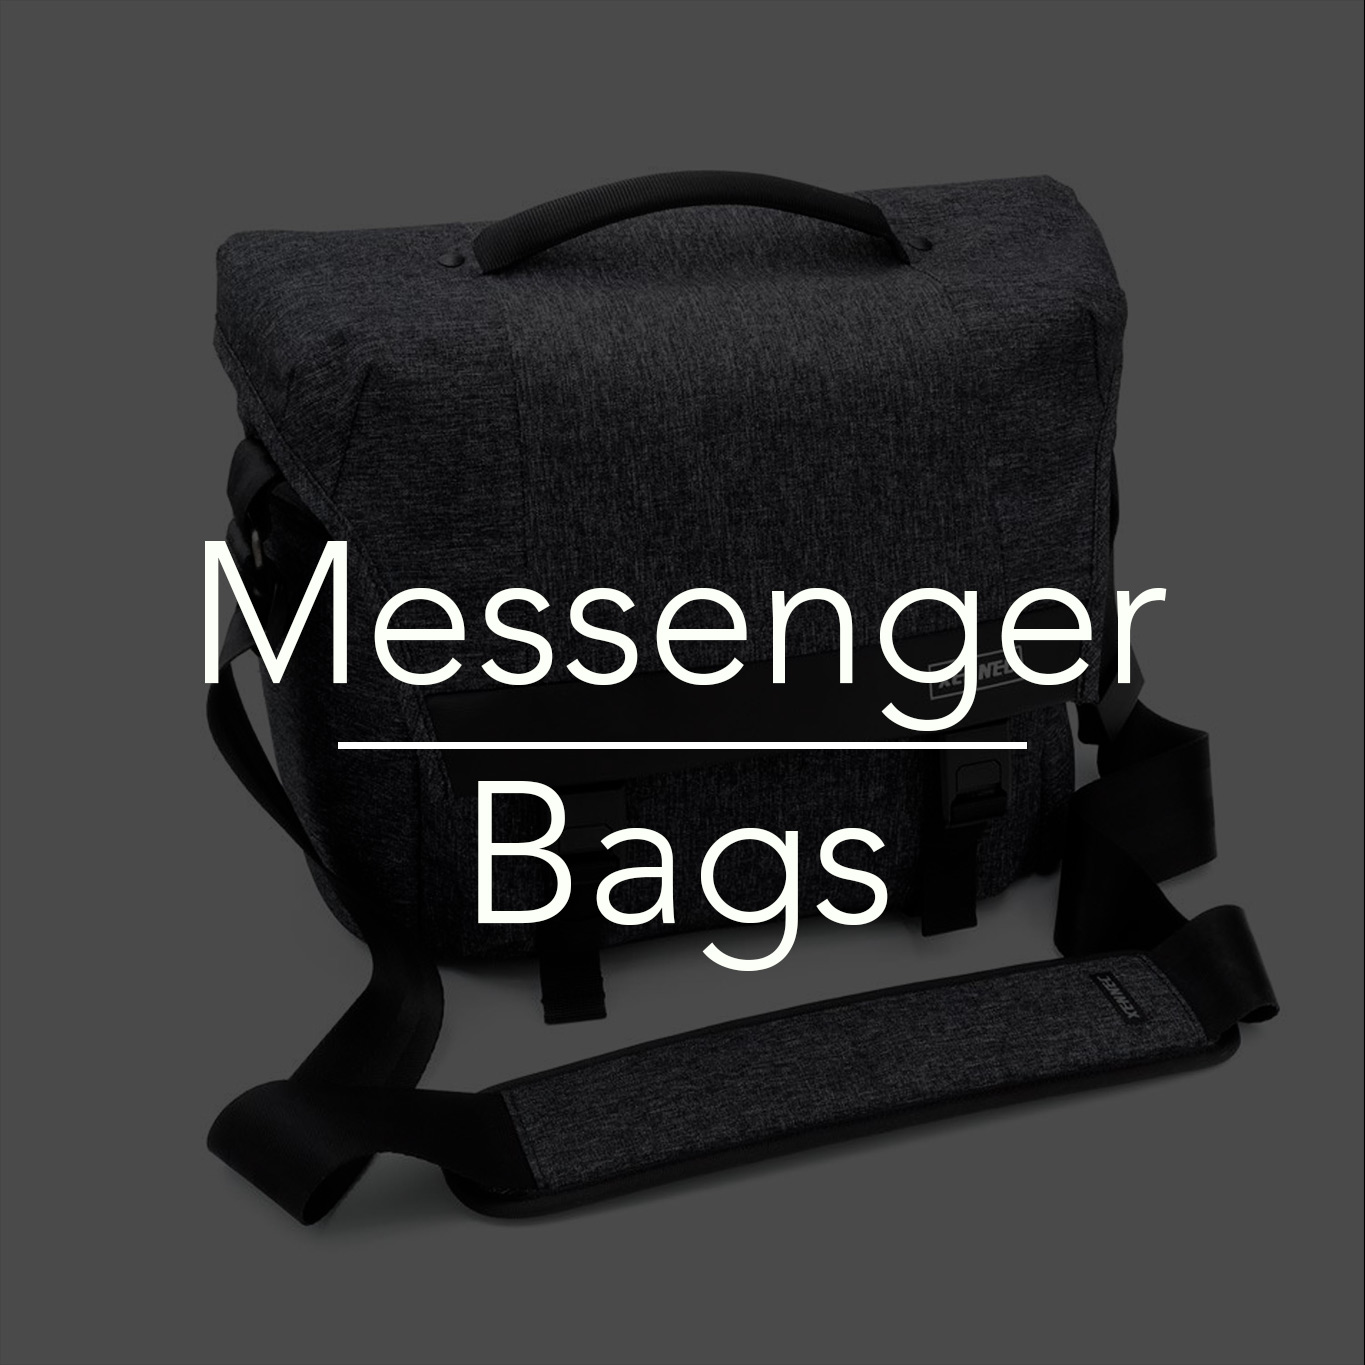 Xennec Messenger Camera Bags Australia with Afterpay